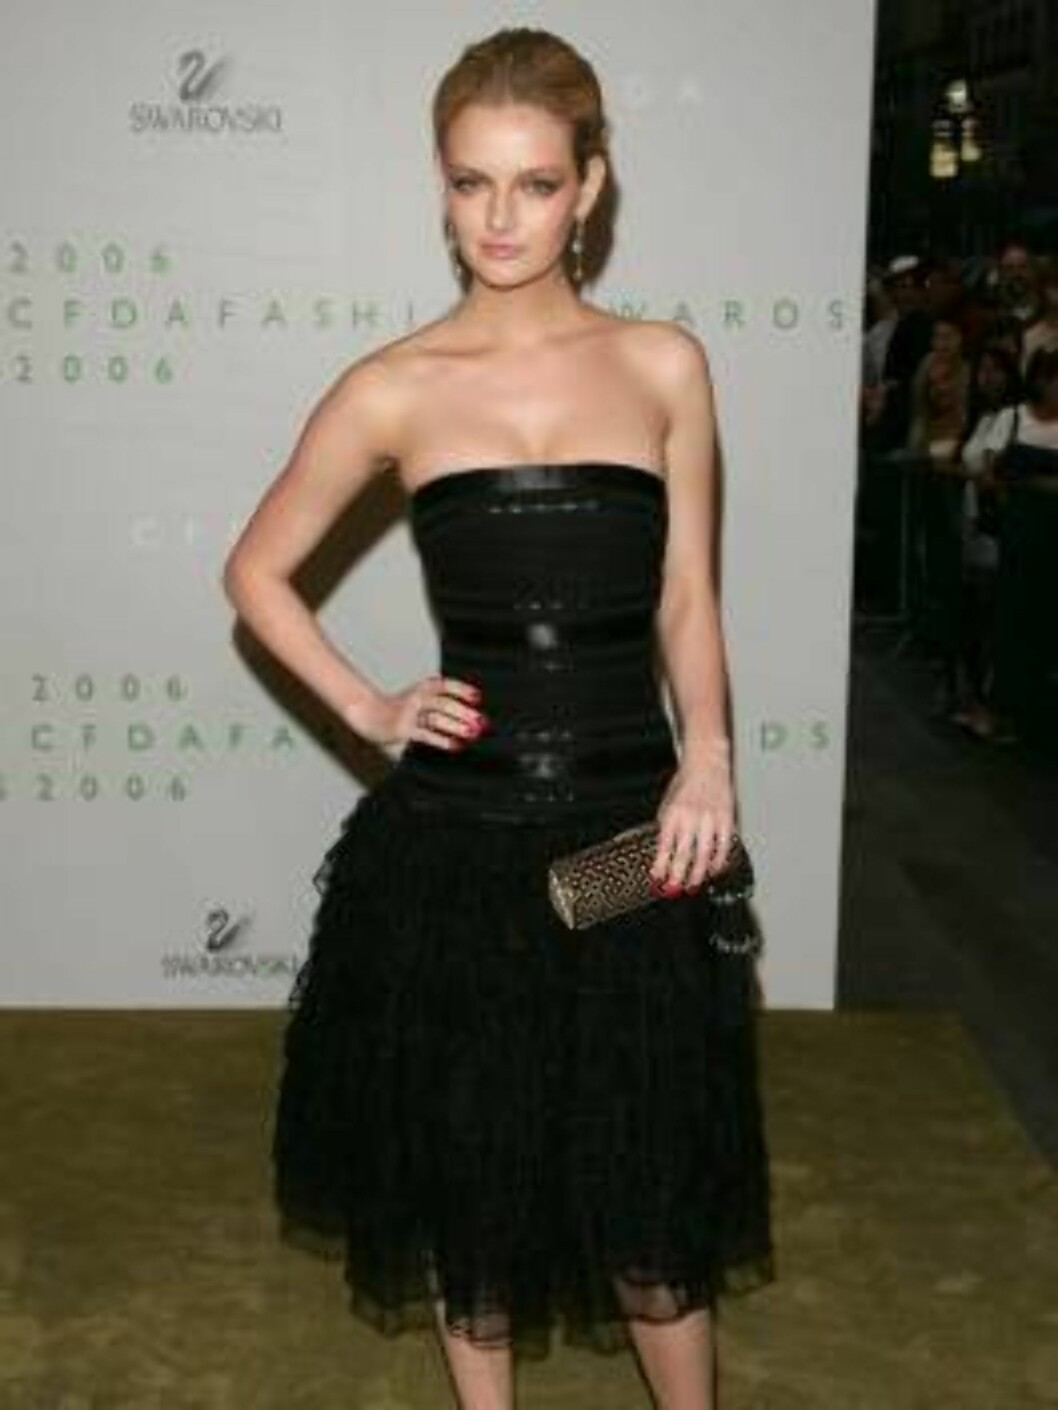 NEW YORK - JUNE 5:  Lydia Hearst attends the 2006 CFDA Awards at the New York Public Library on June 5, 2006 in New York City.  (Photo by Peter Kramer/Getty Images) *** Local Caption *** Name  * SPECIAL INSTRUCTIONS:  * *OBJECT NAME: 71124720KV329_2006_CF Foto: All Over Press